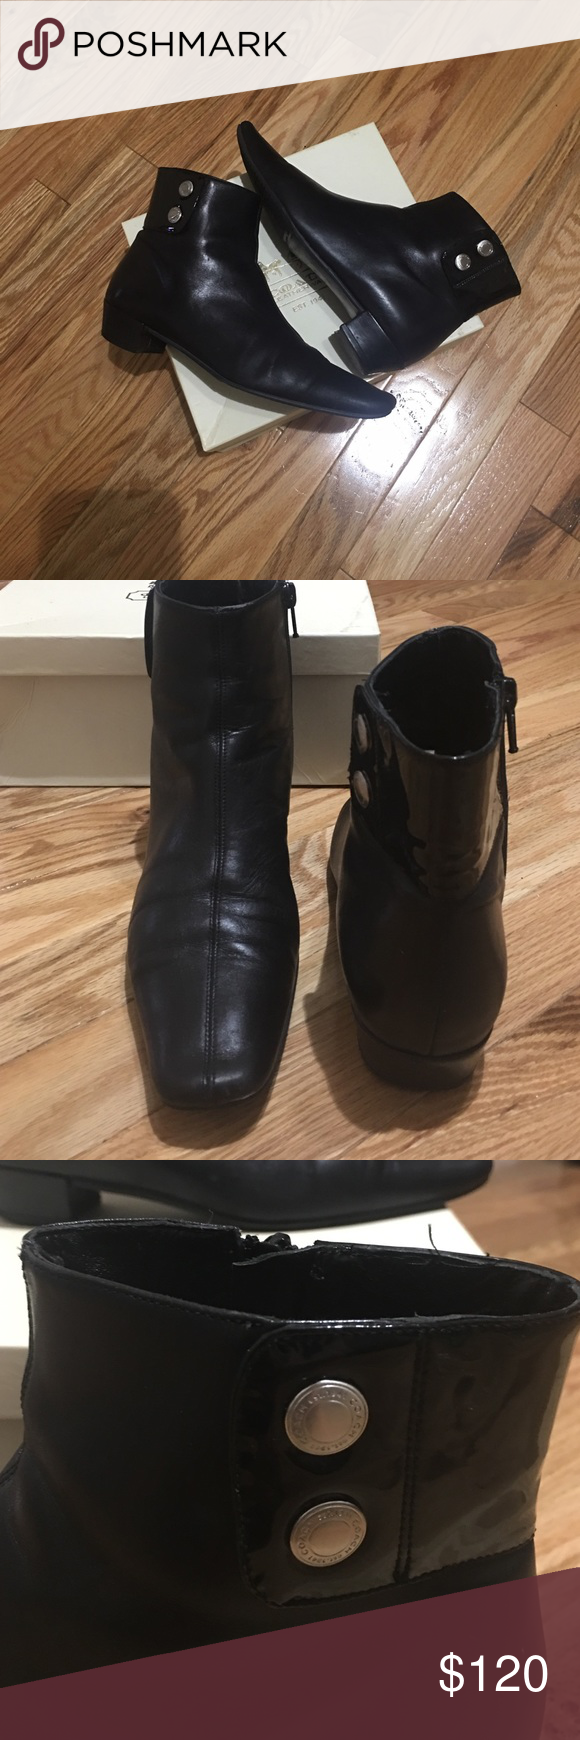 Coach Black booties Coach Black size 7 B ankle booties.  Has side zipper for easy on/off , silver Coach button detail black patten around back half of ankle. 1 in stacked heel. Coach Shoes Ankle Boots & Booties